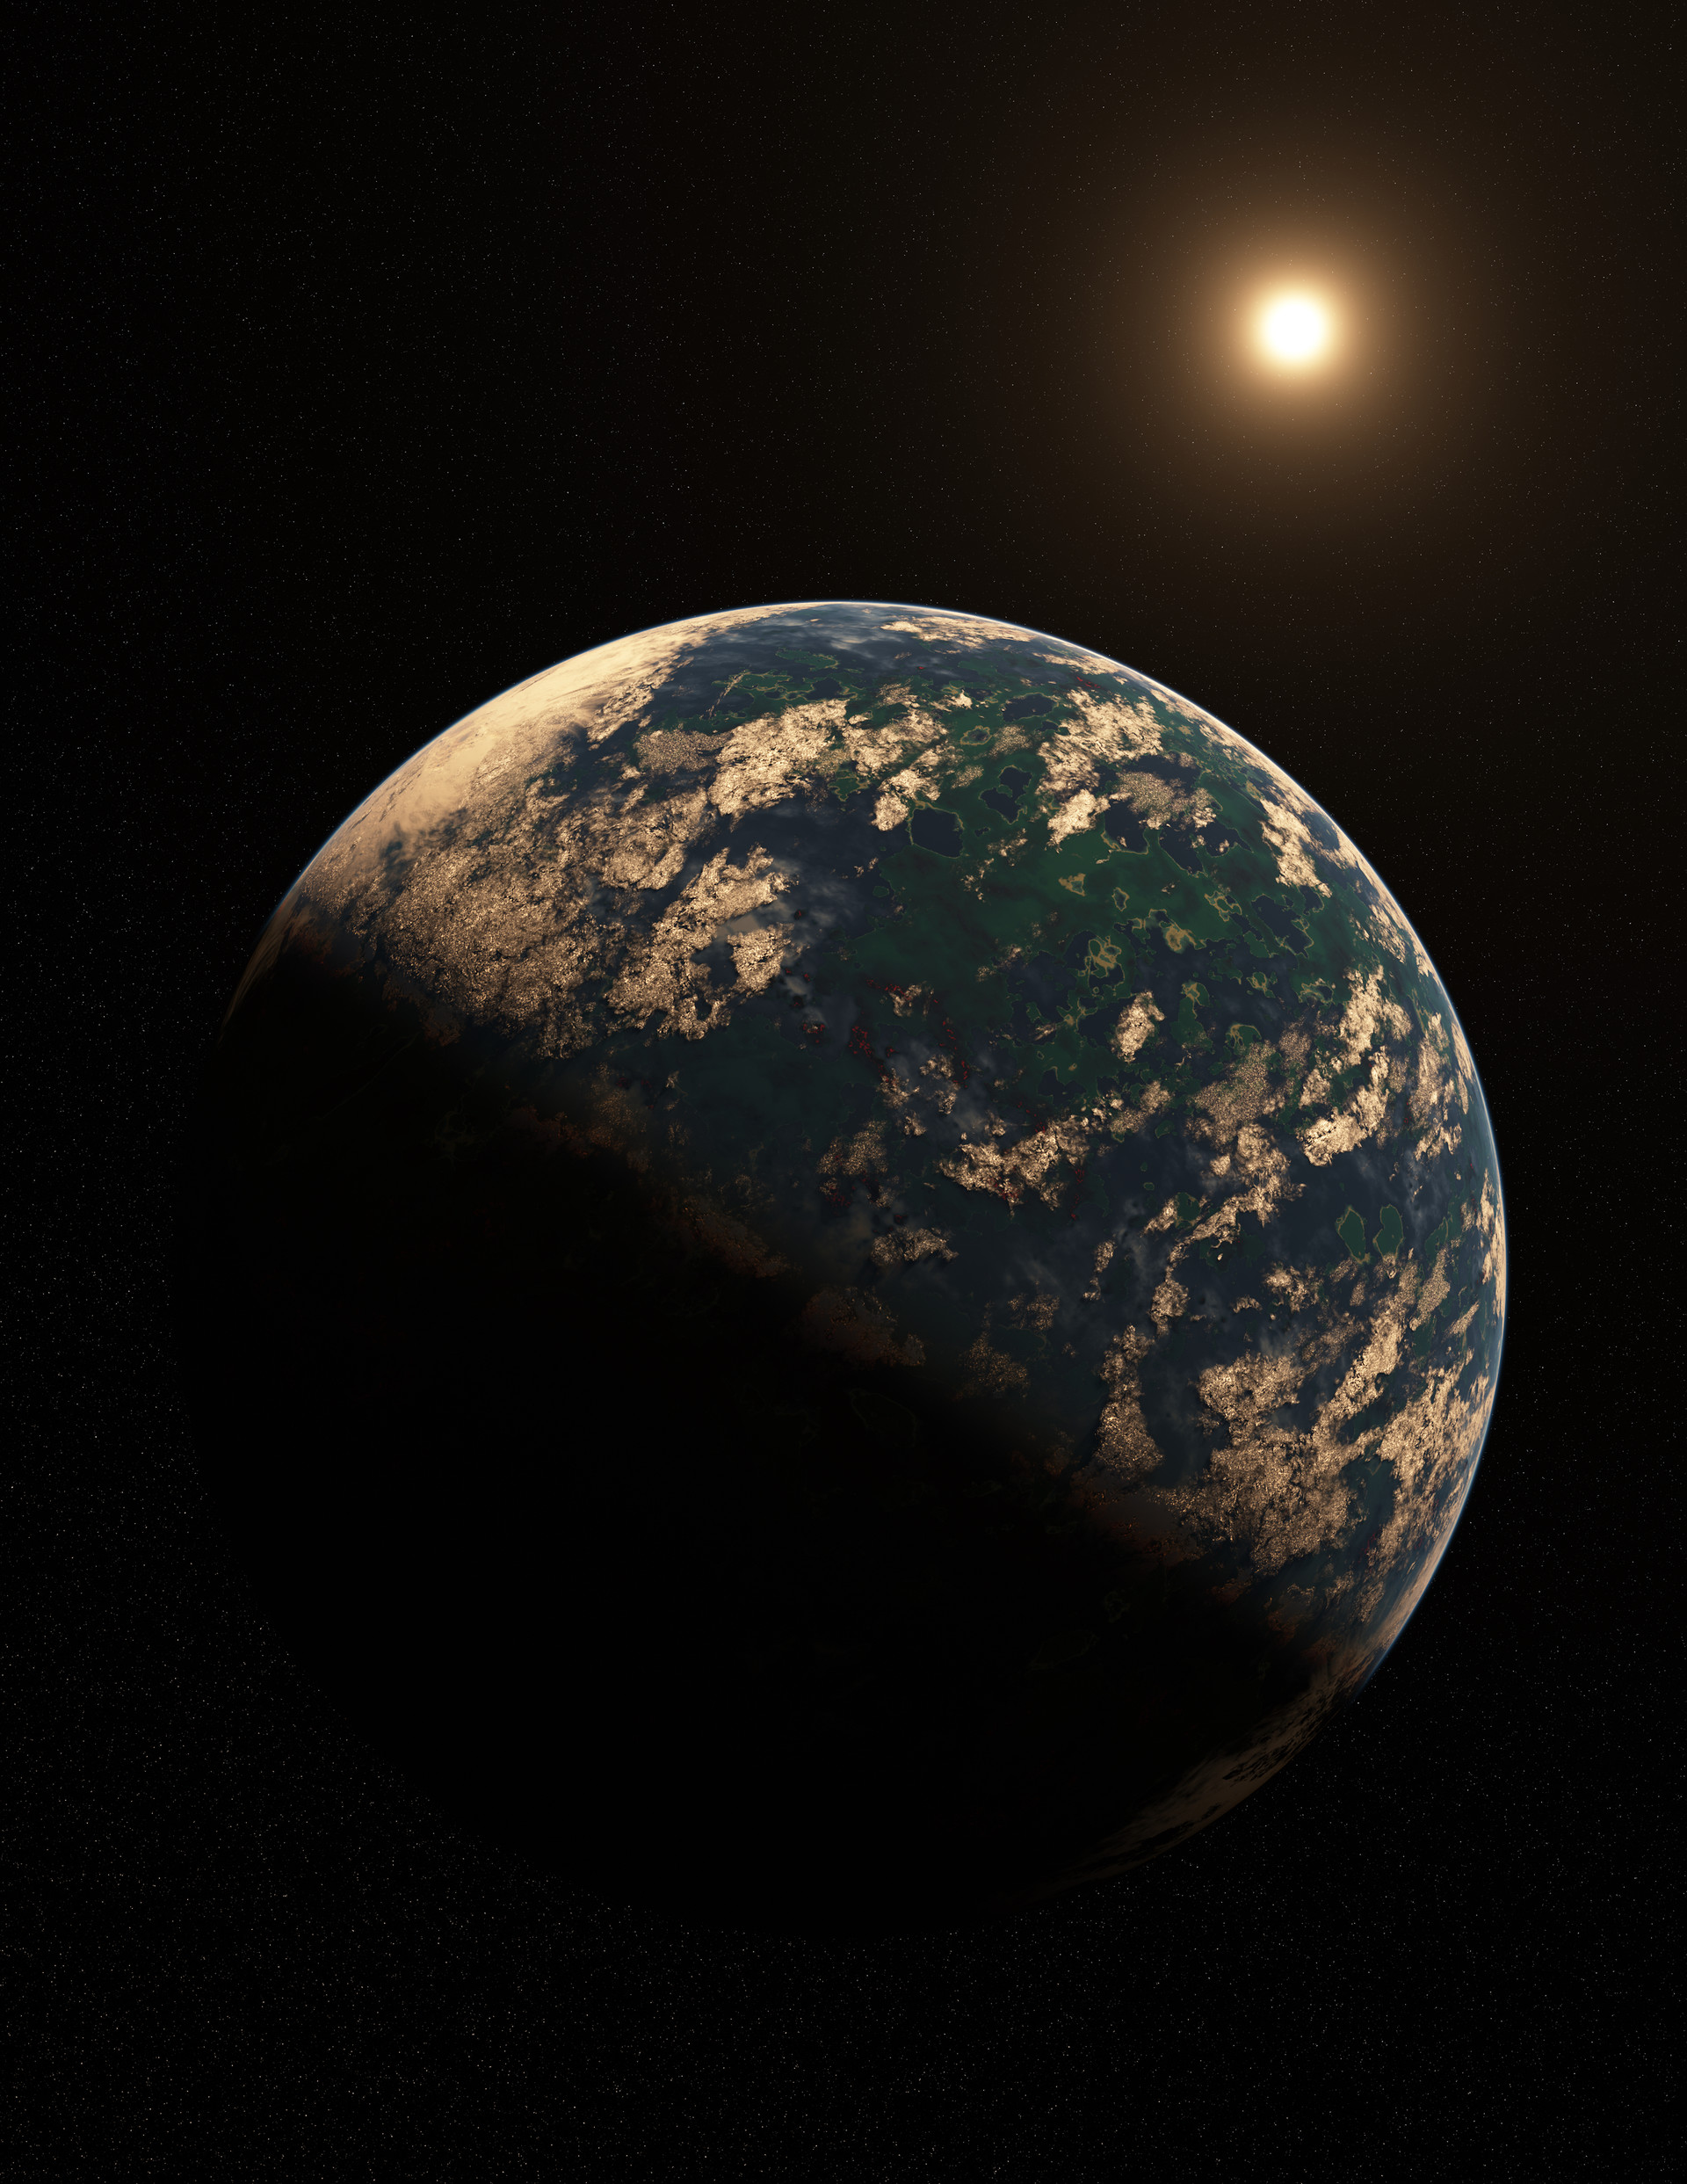 Kepler 186f - One of the more likely places life may exist outside our solar system. Learn more - https://en.wikipedia.org/wiki/Kepler-186f